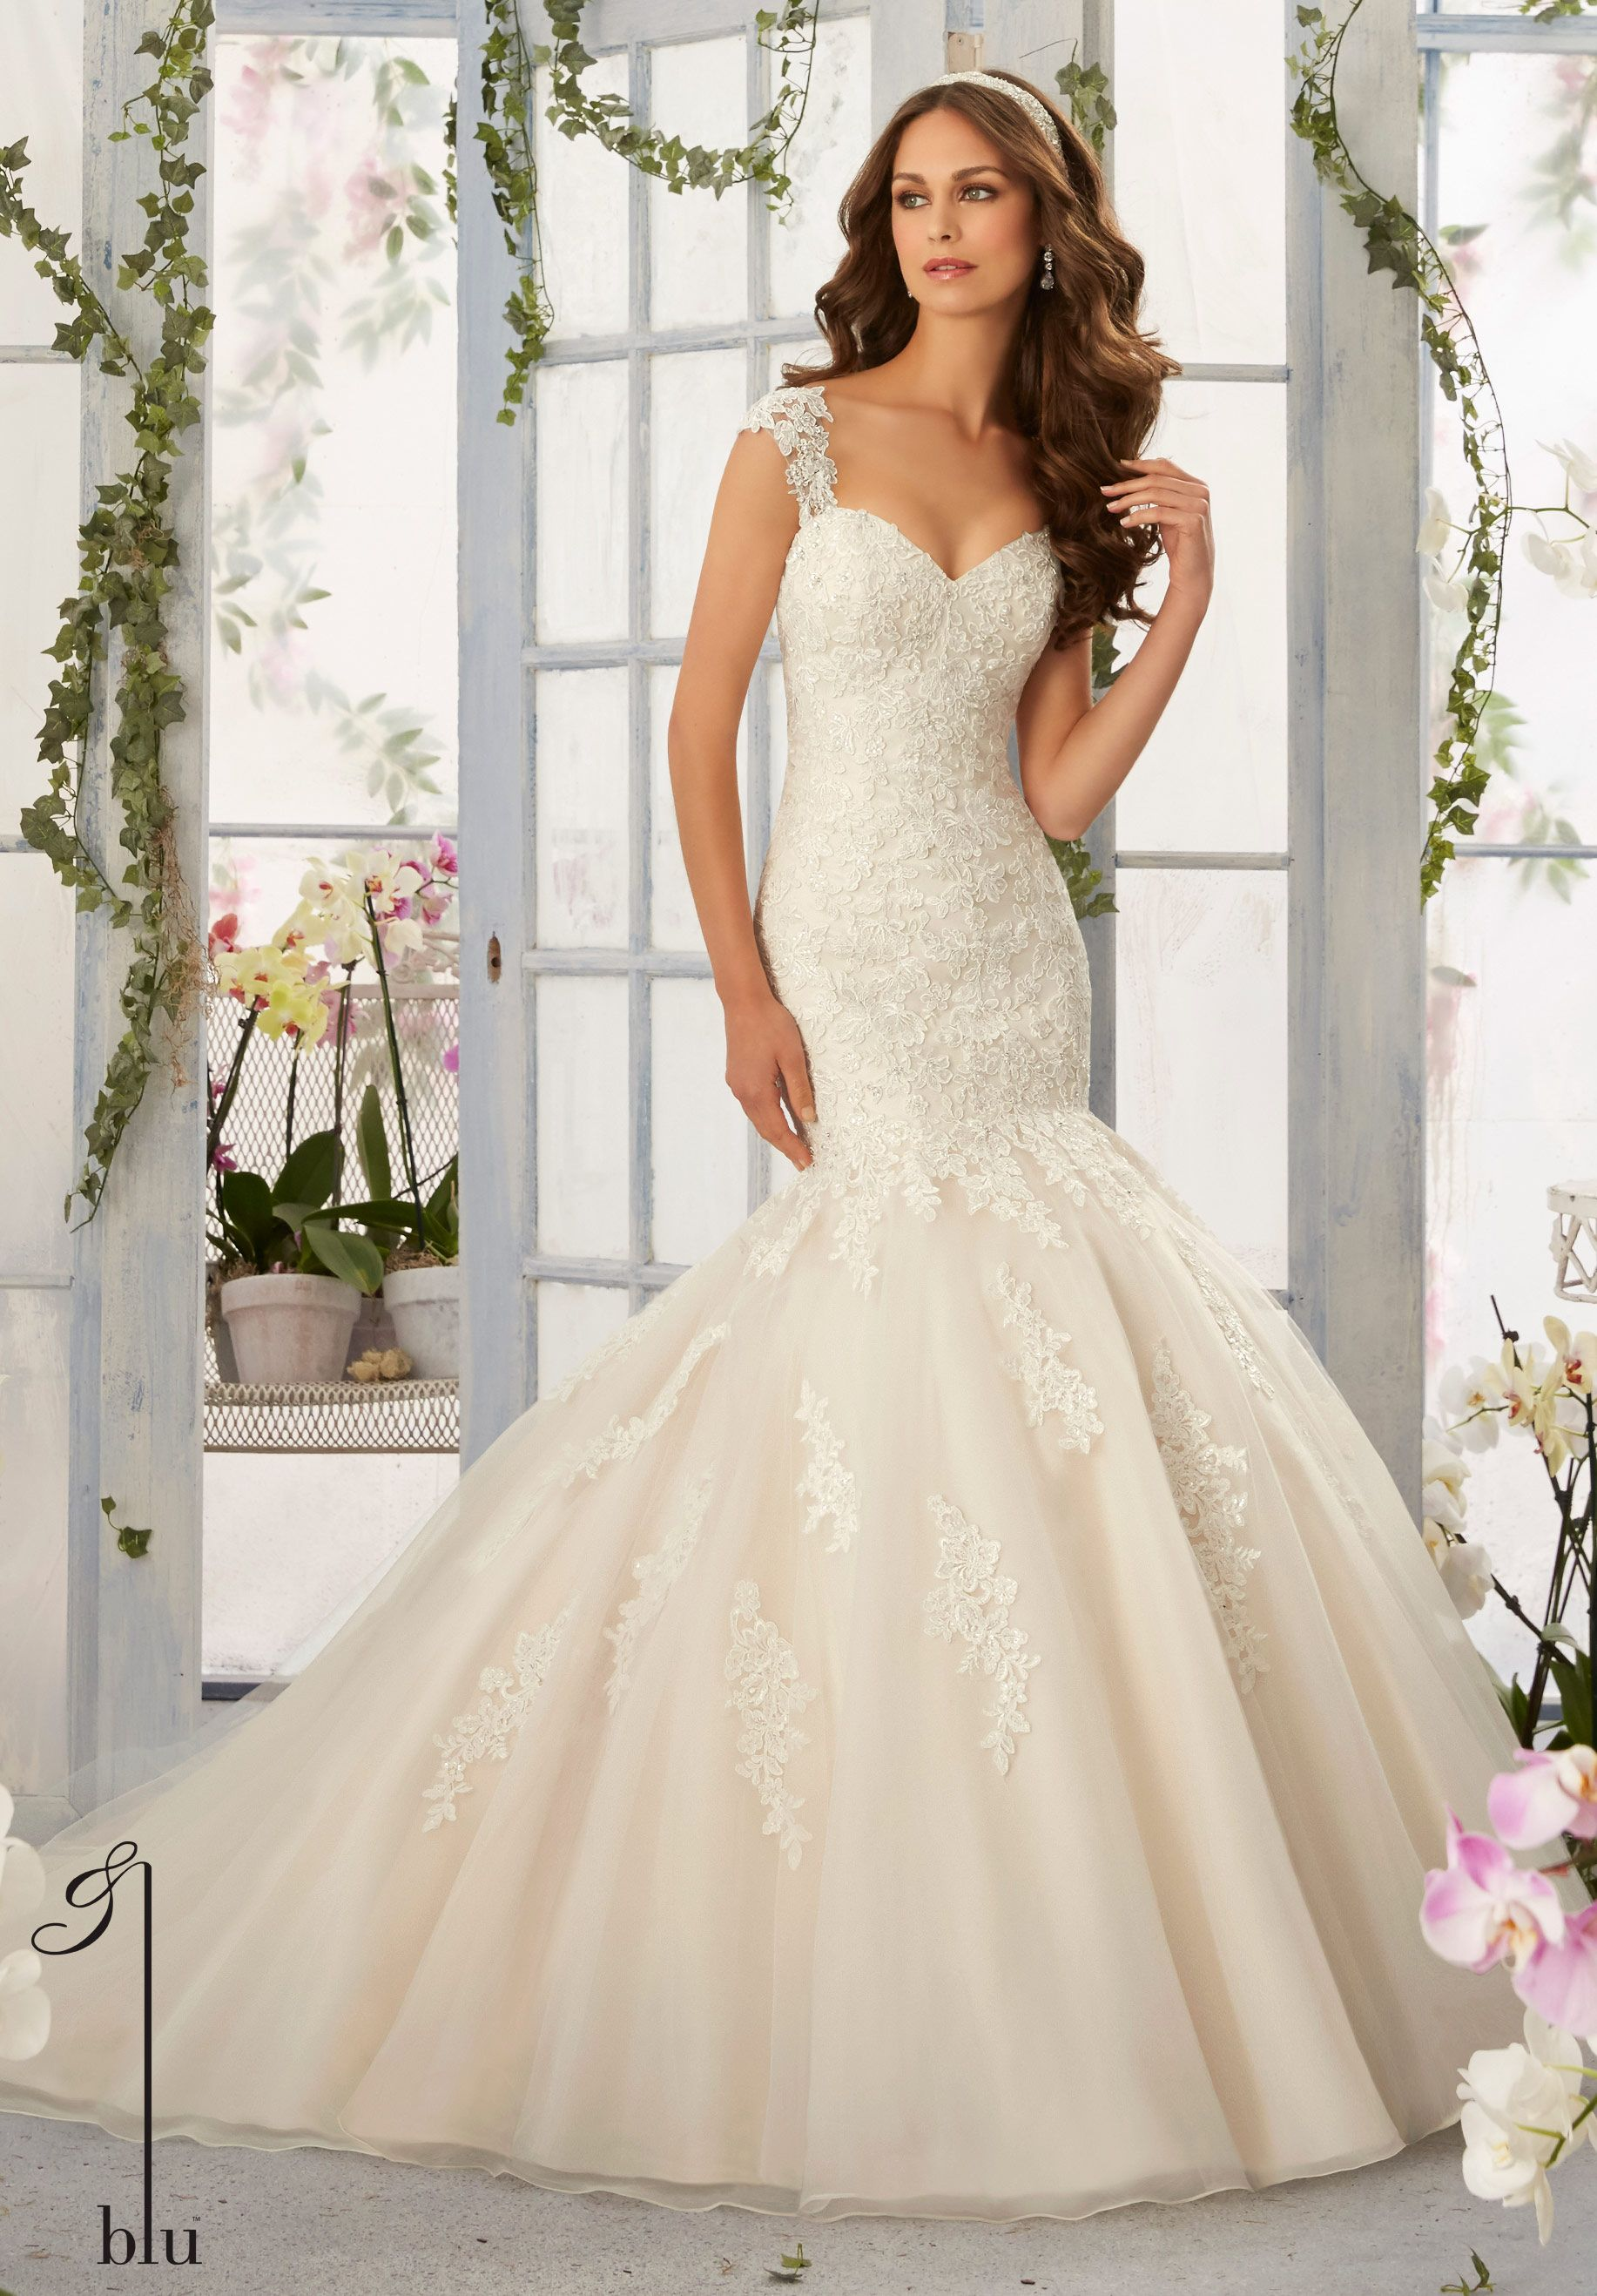 Wedding gowns by blu featuring alencon lace appliques with frosted